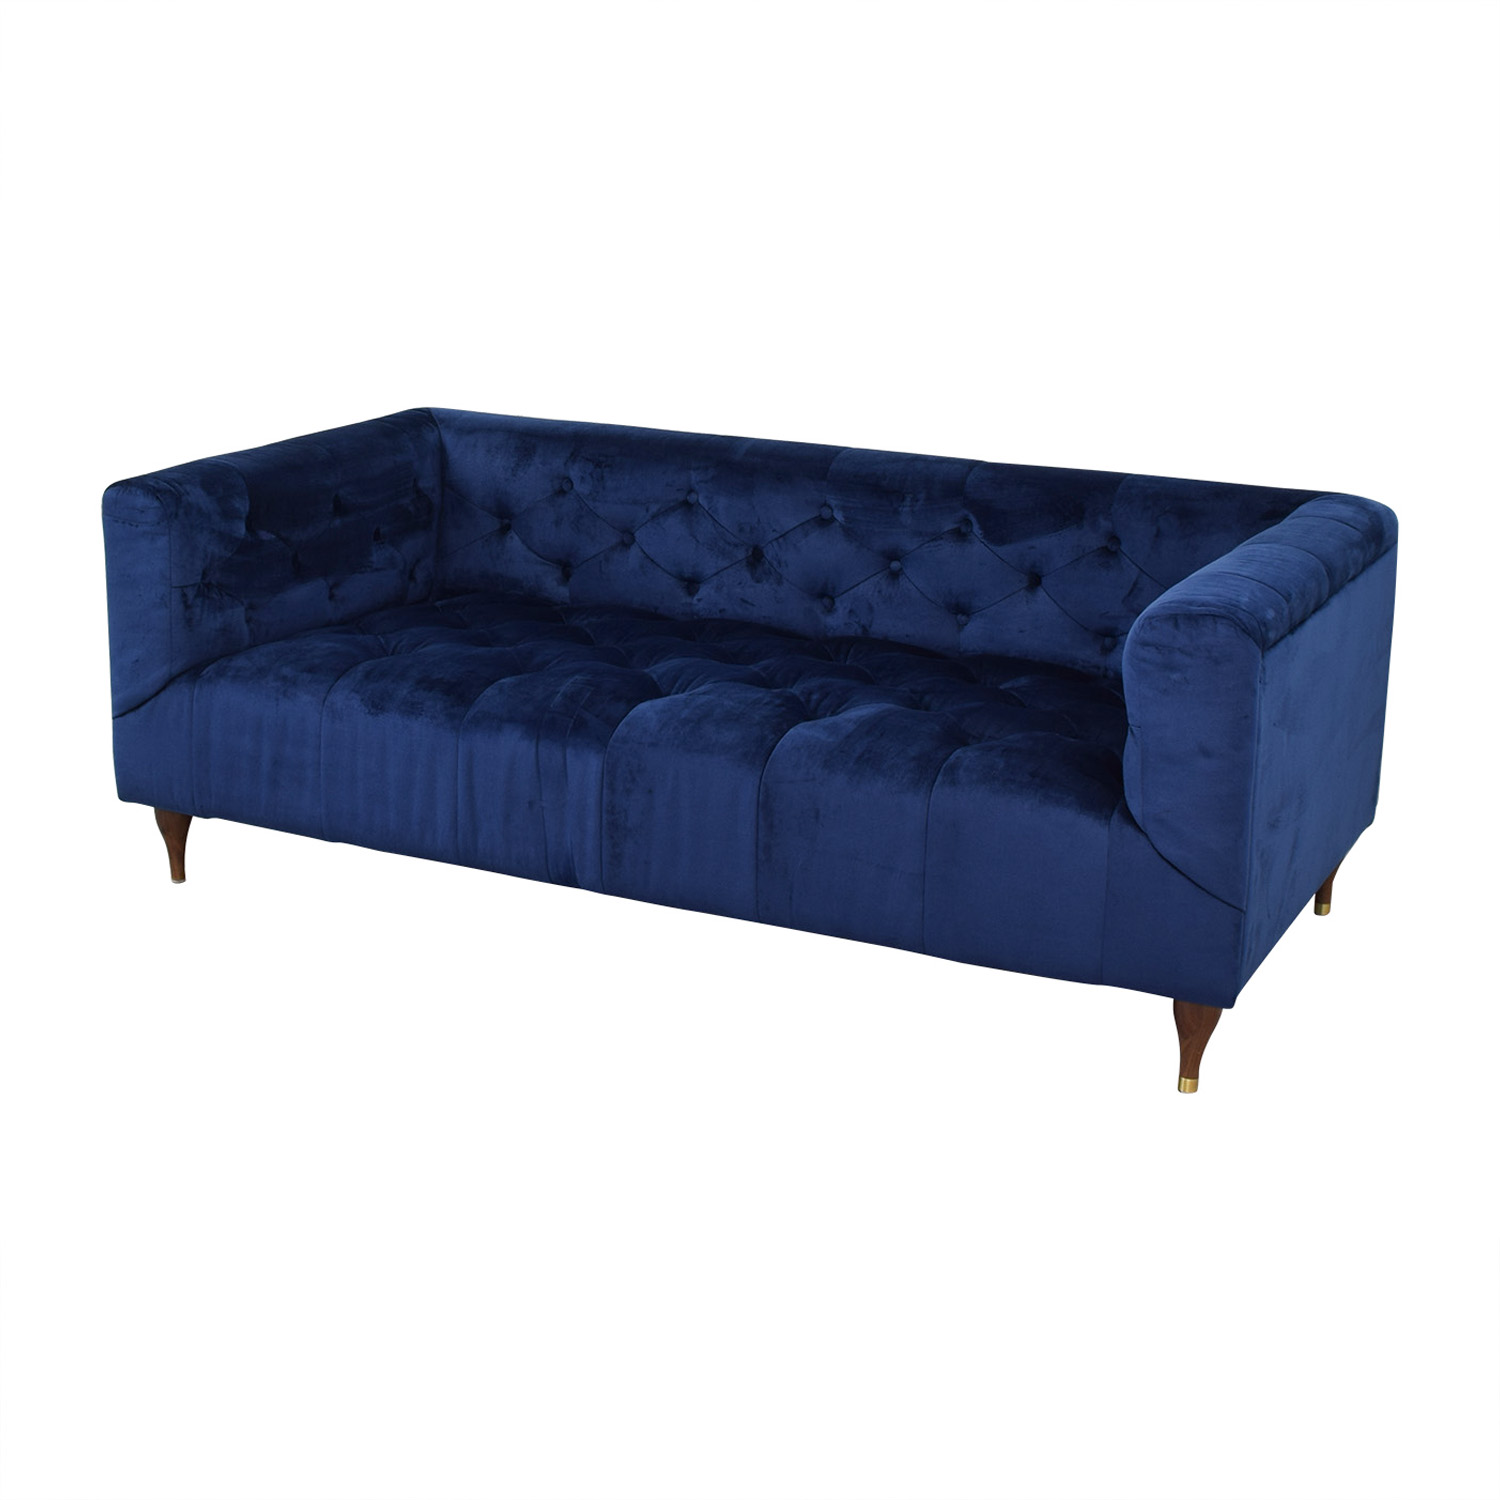 Interior Define Ms. Chesterfield Velvet Oxford Blue Tufted Sofa dimensions